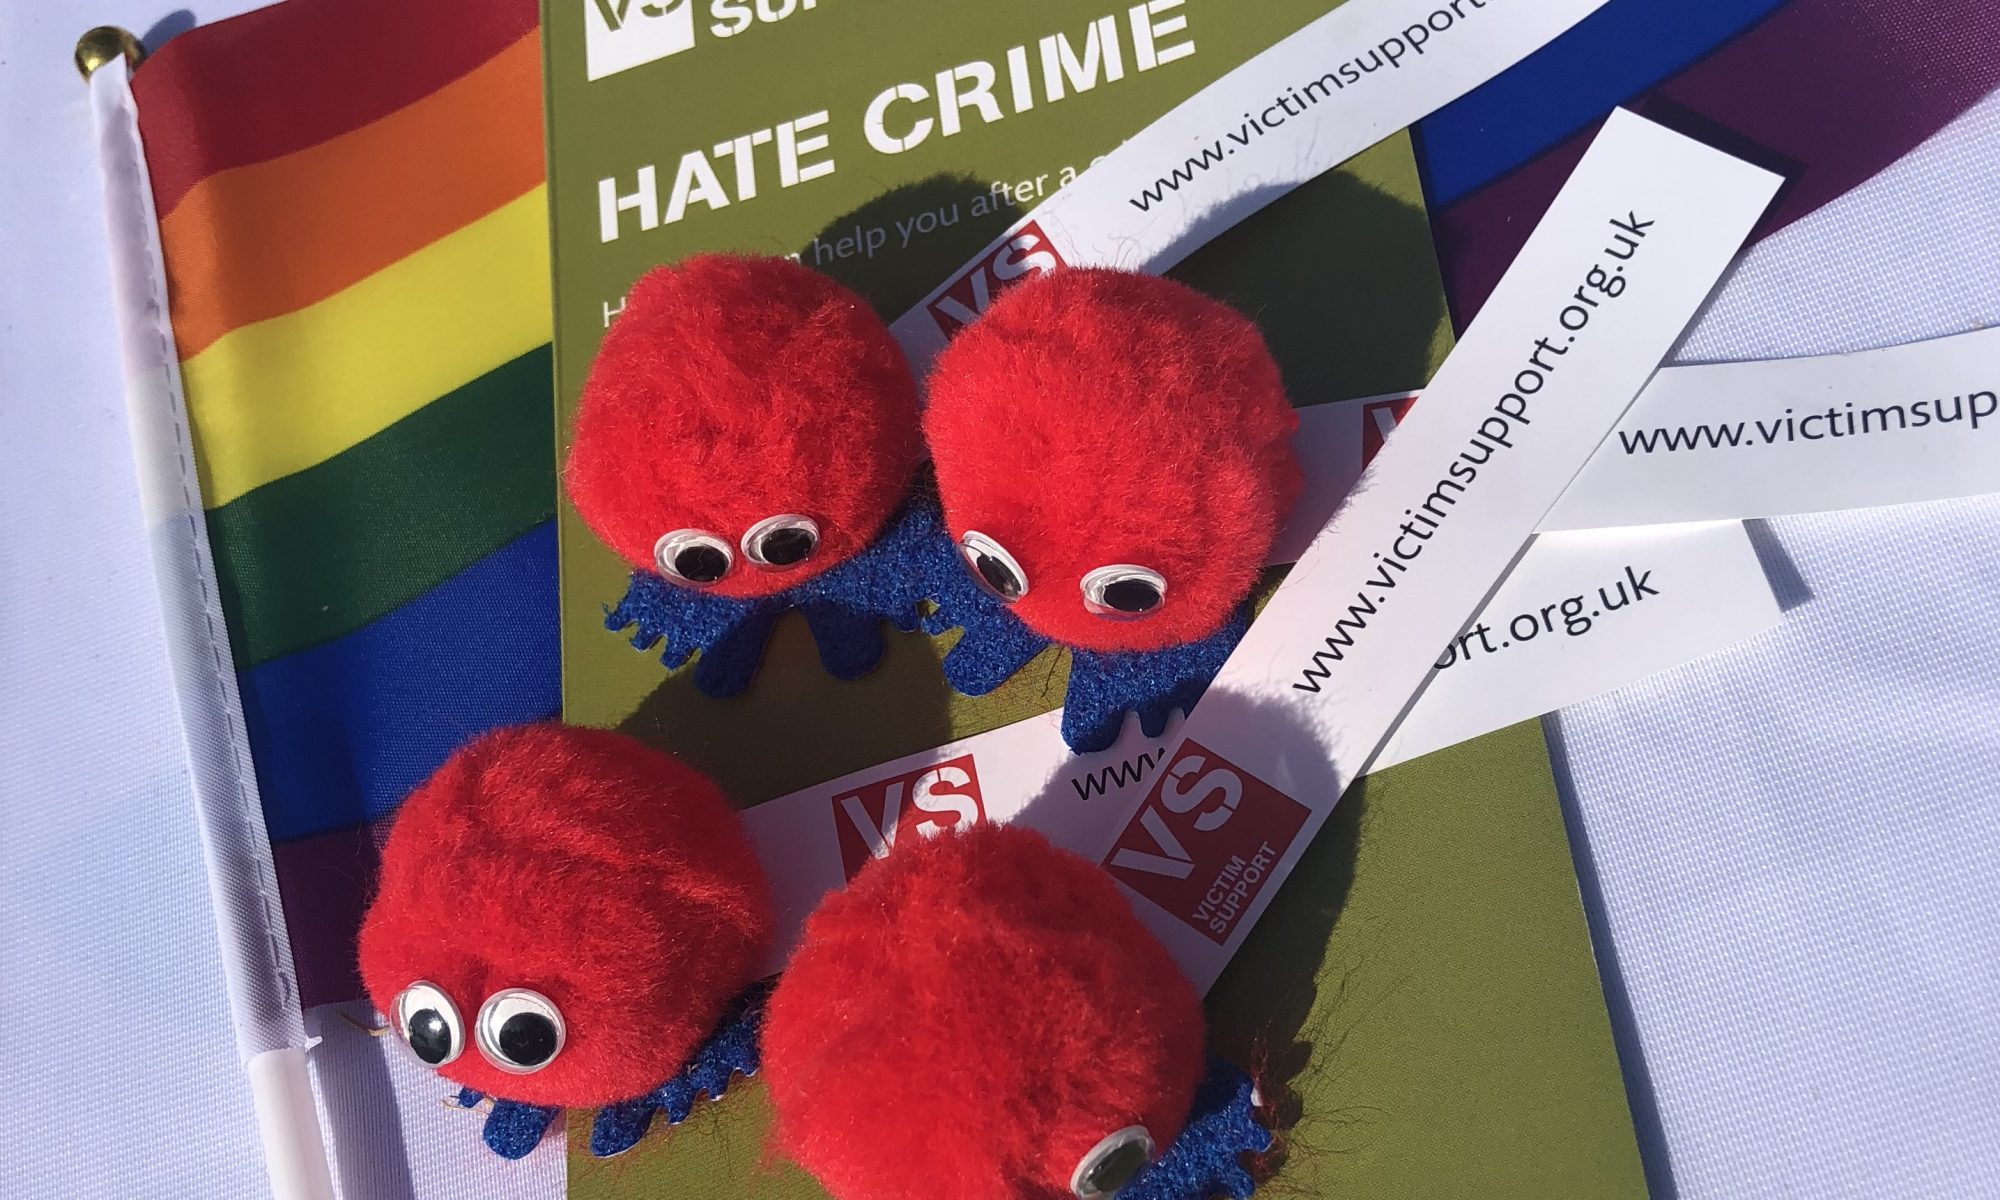 Hate crime leaflet, pride flag and logo bugs on a table